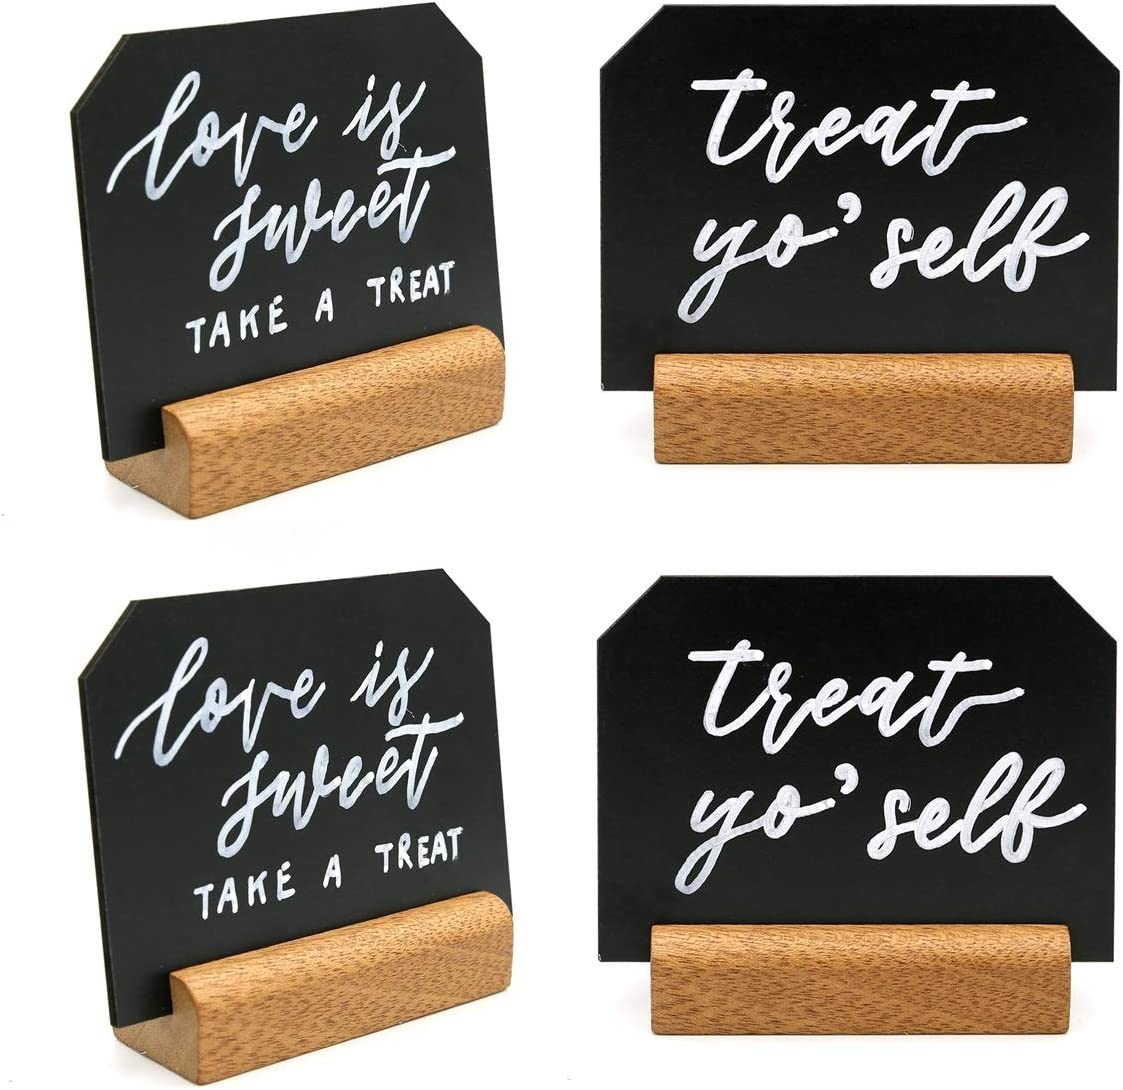 UNIQOOO Set of 6 Blank Mini Chalkboard Signs with Rustic Wood Stands | Tabletop Chalk Board Price Tag Food Sign for Wedding Bakery Cafe Restaurant Retail Shop